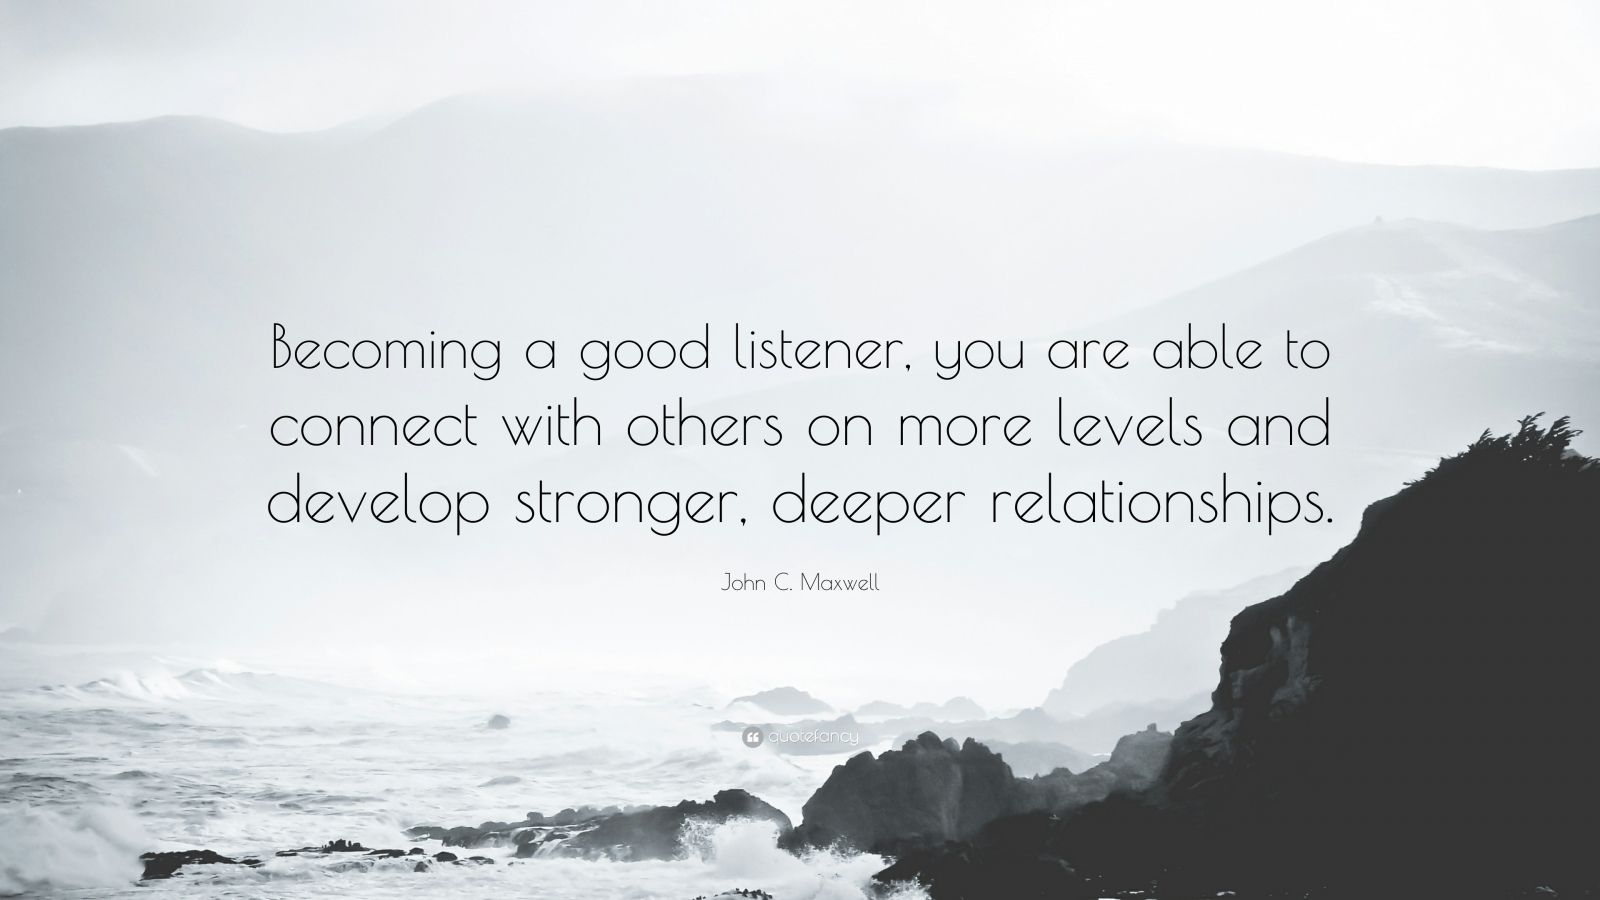 """John C. Maxwell Quote: """"Becoming a good listener, you are able to connect with others on more levels and develop stronger, deeper relationships."""""""